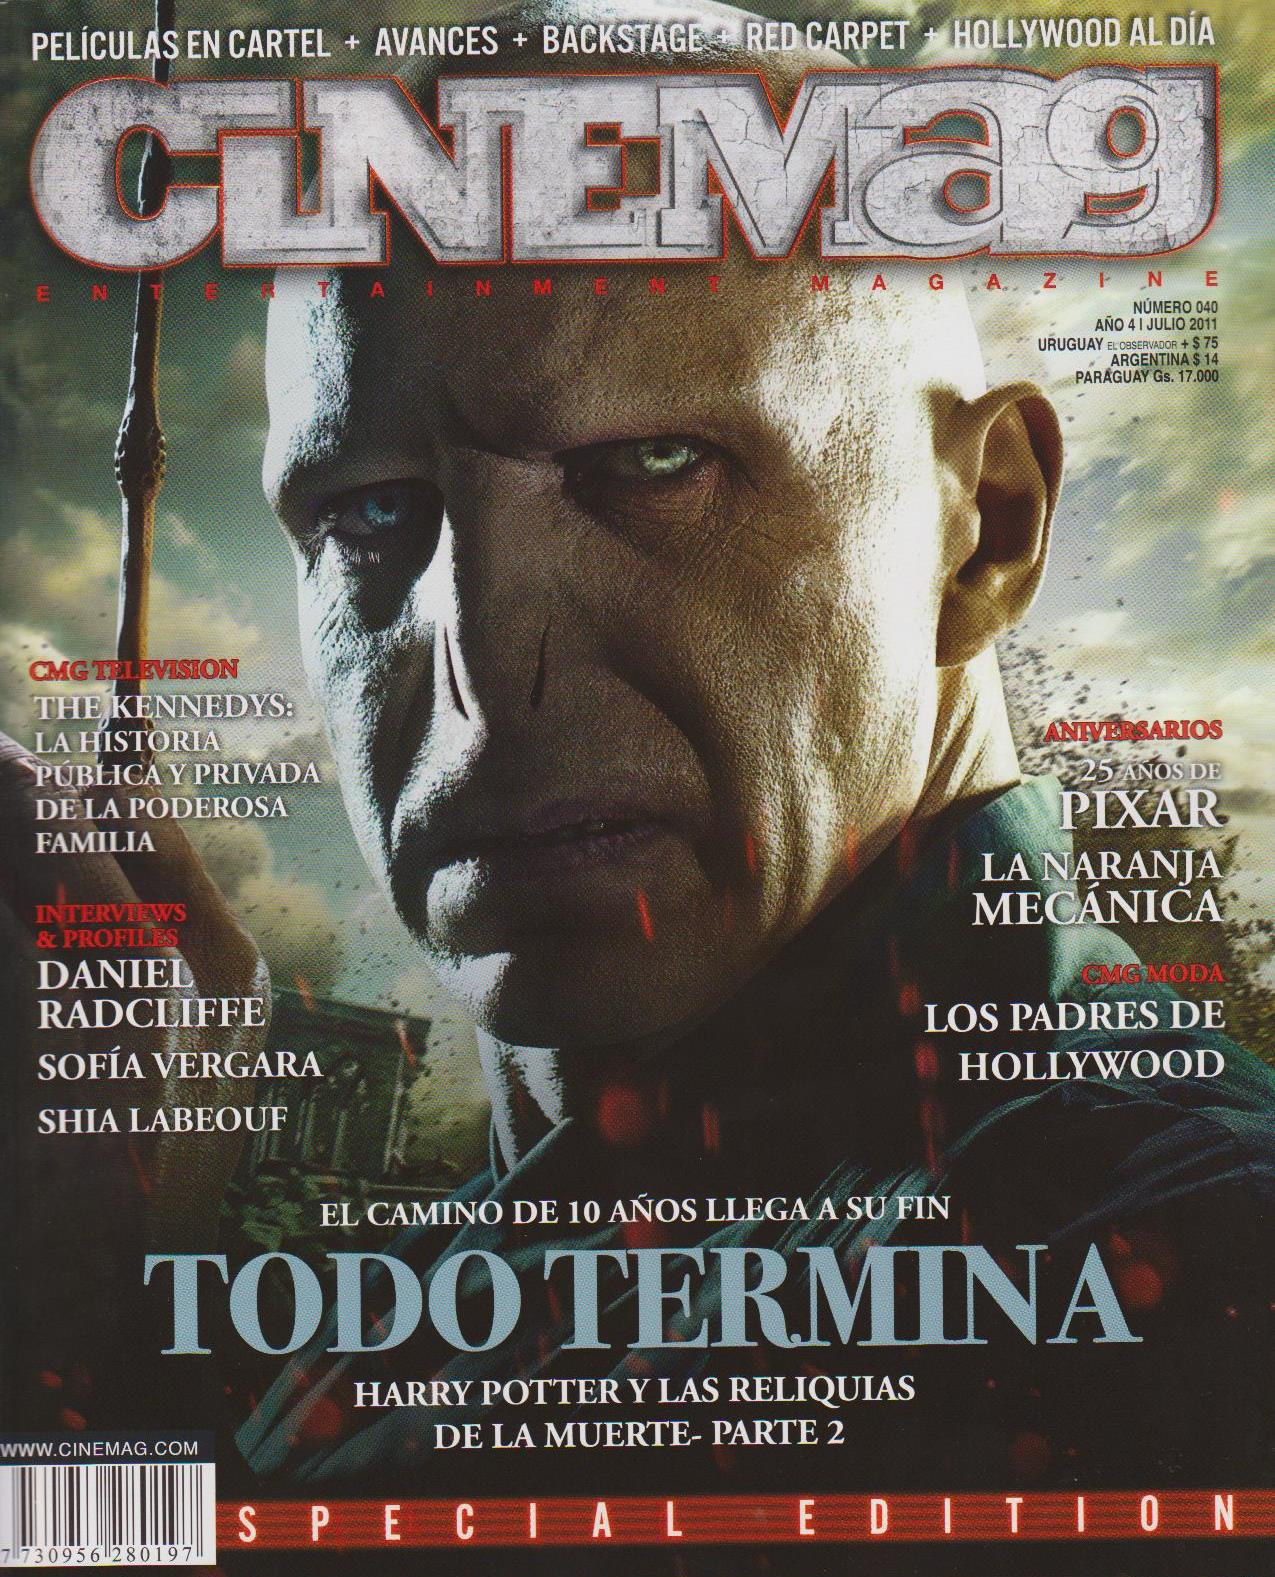 Harry Potter BlogHogwarts CineMAG 01 (1)